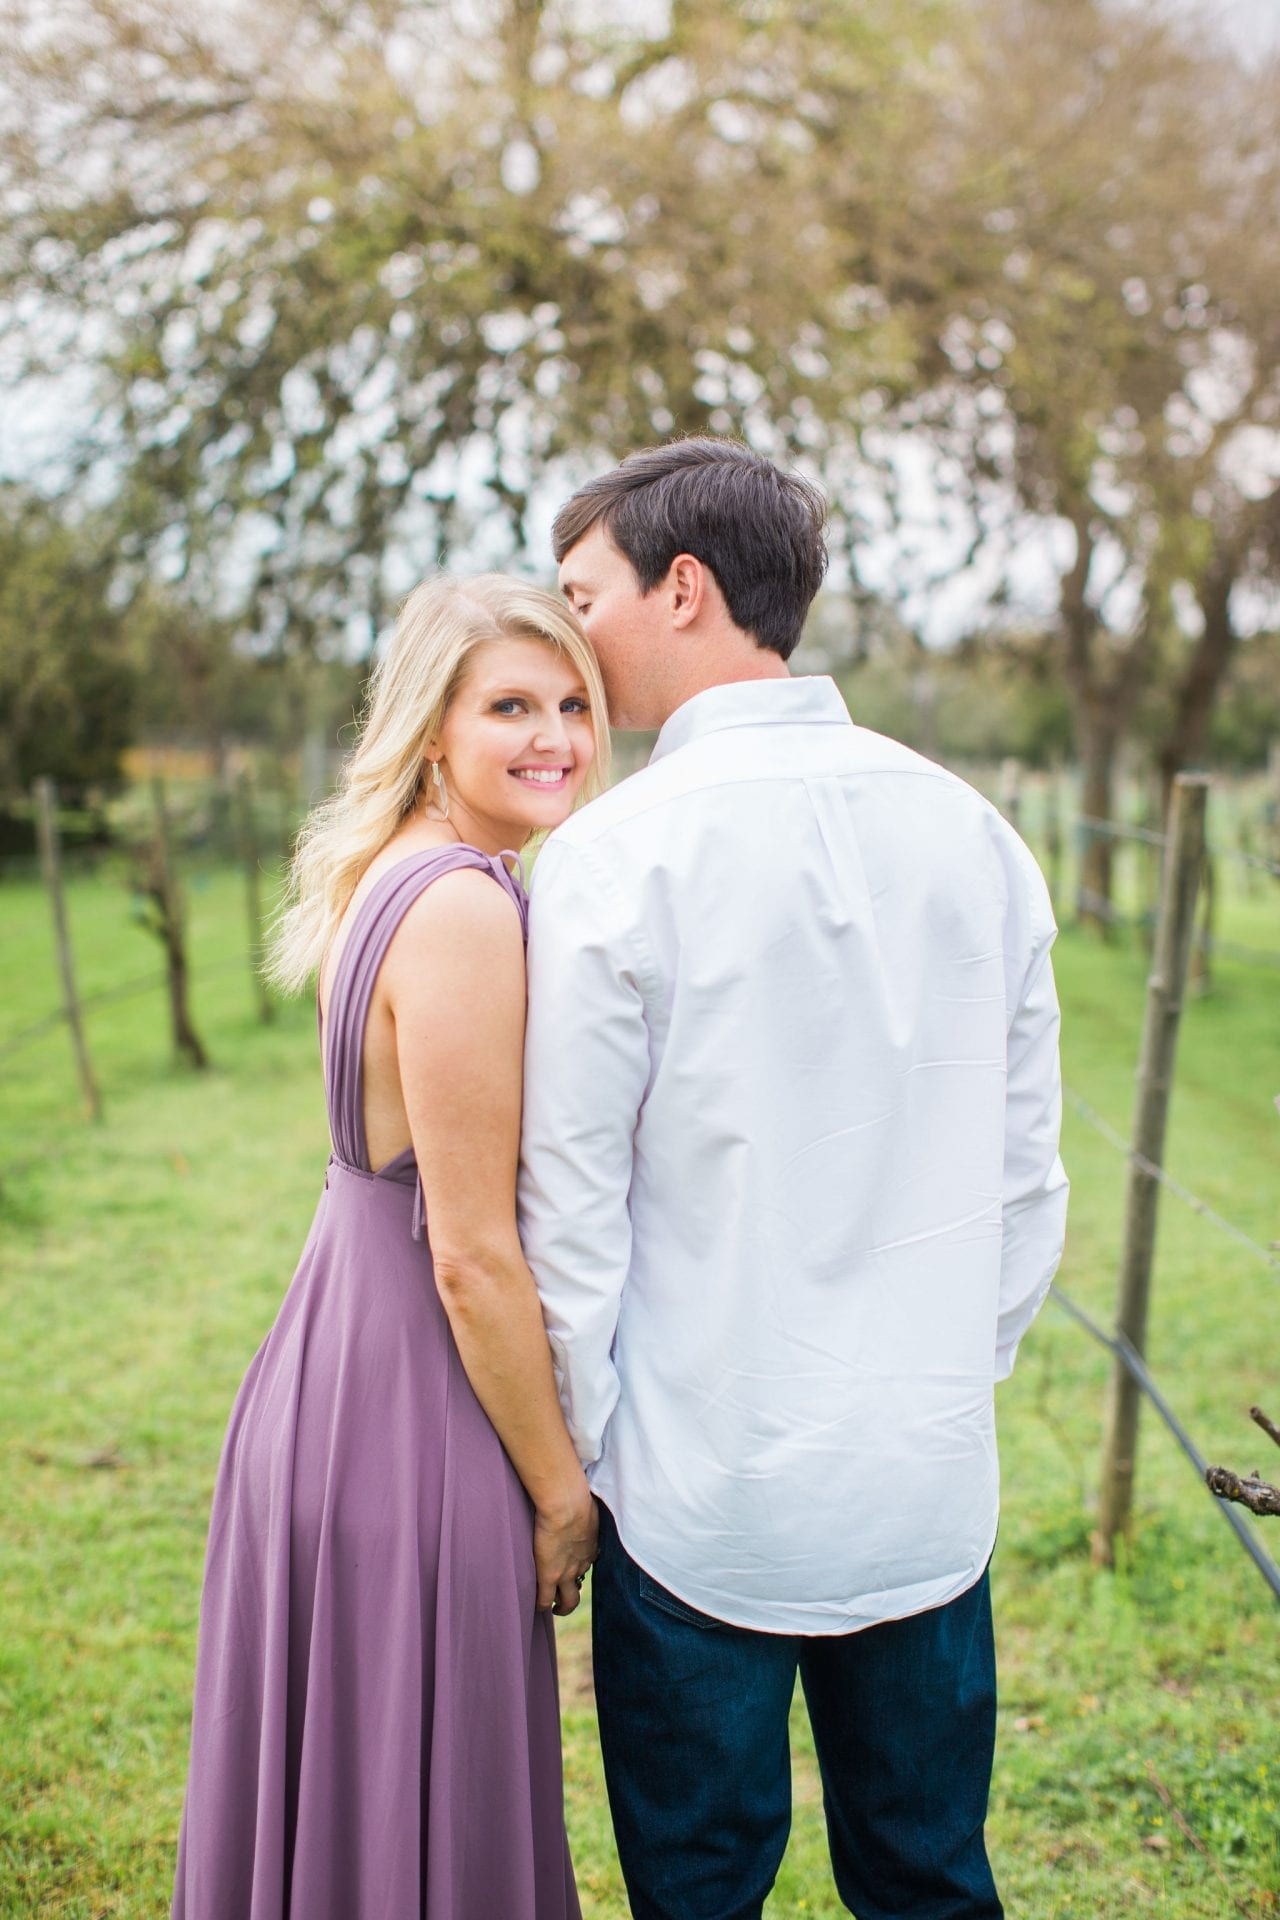 Michele Engagement session at Oak Valley Vineyards looking back purple dress